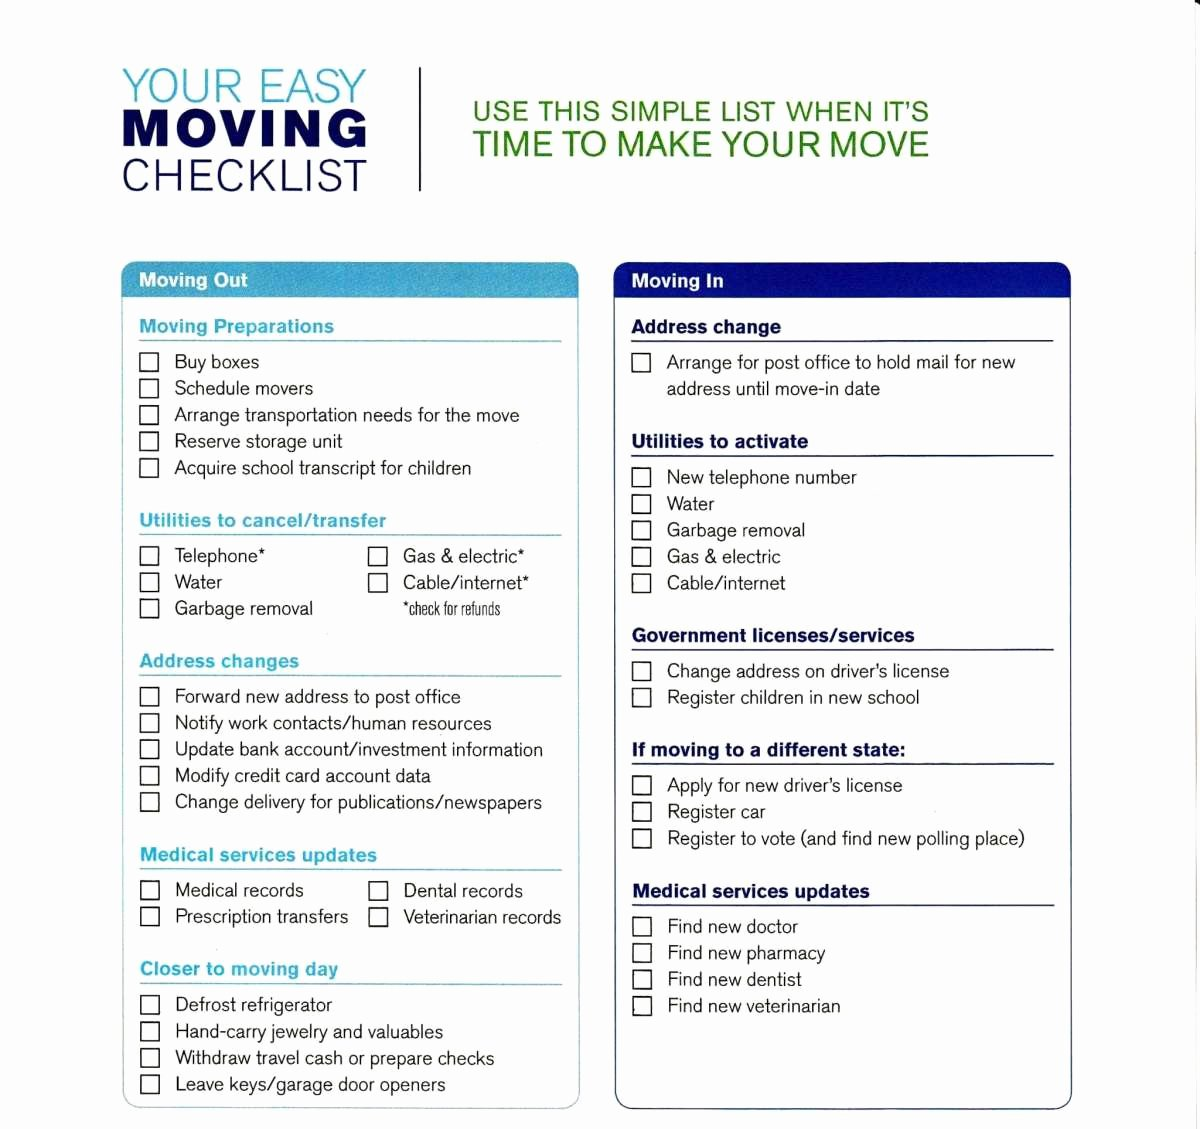 Business Moving Checklist Template Elegant 5 Moving Checklist Templates – Word Templates